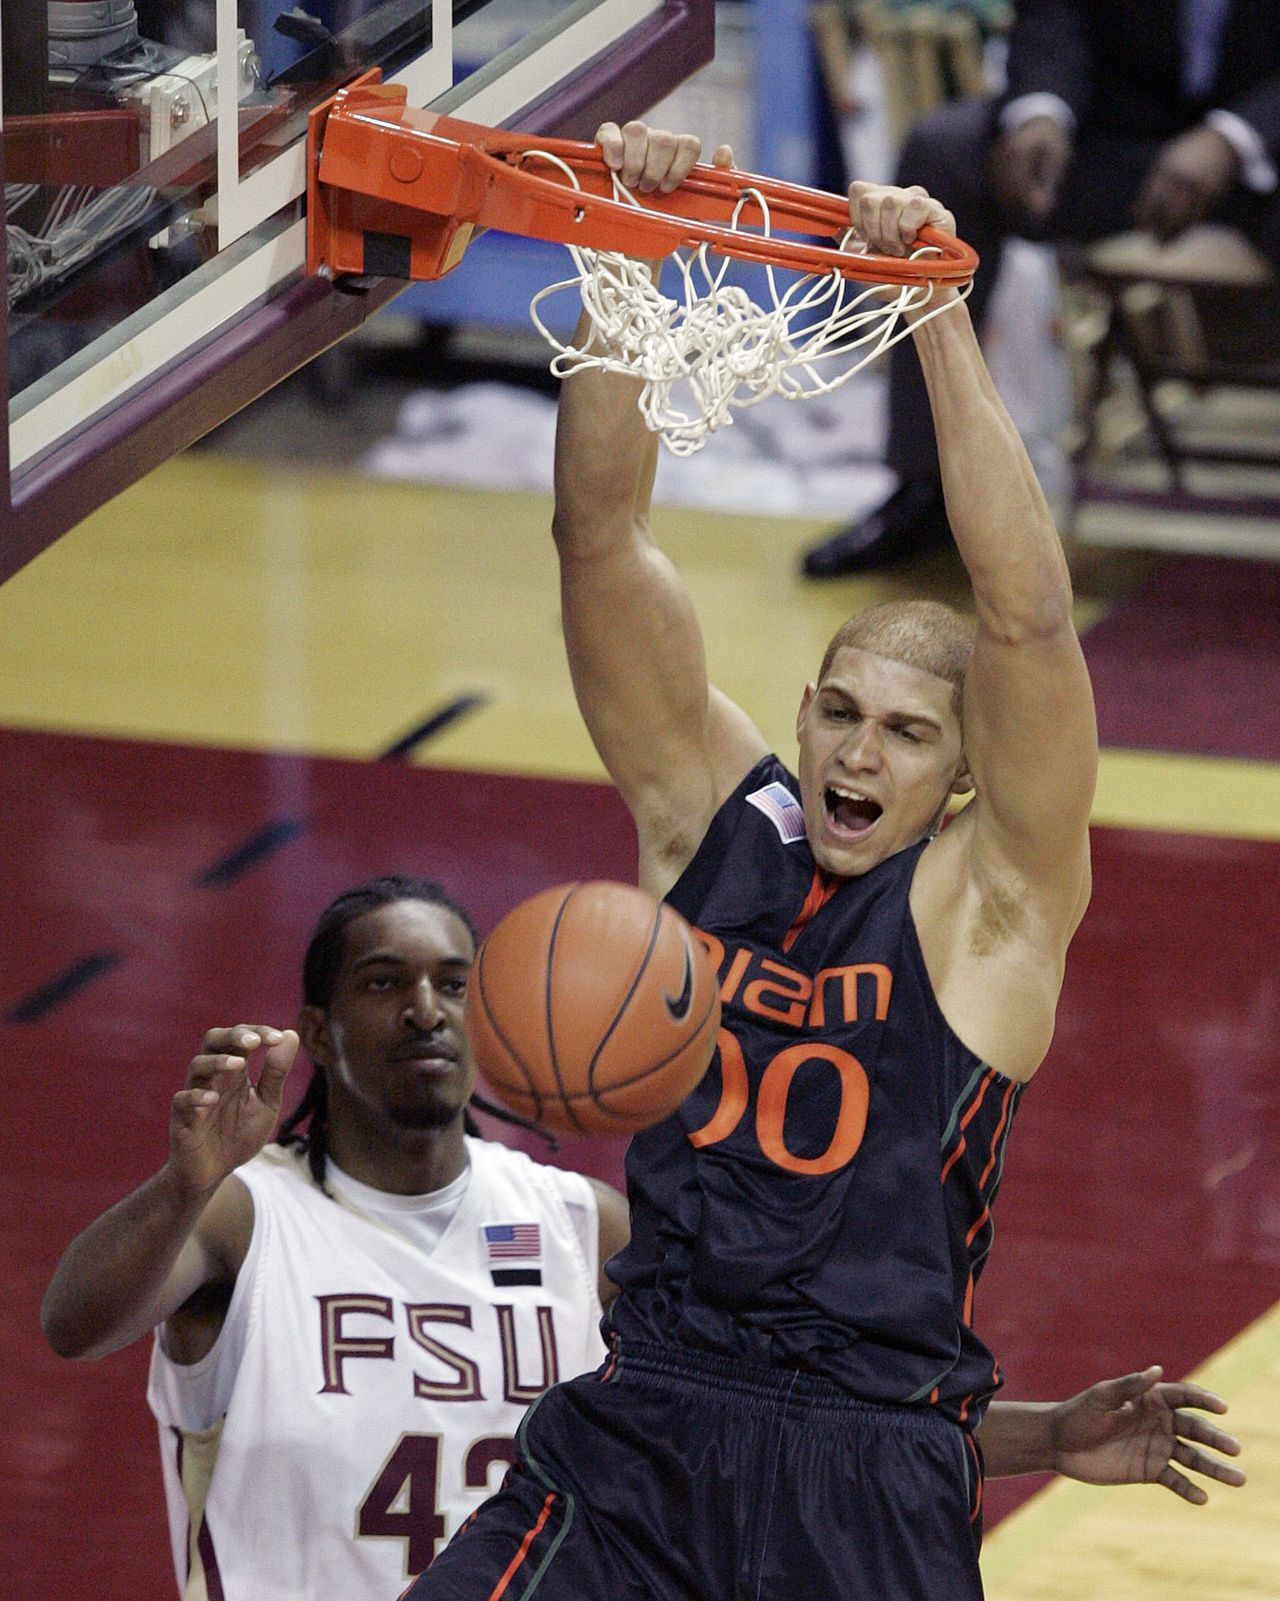 Before he was drafted by the New Orleans Saints in 2010, TE Jimmy Graham had only played one season of football at Miami, but spent four years on the basketball team and went to the NCAA Tournament in 2008 and 2009.